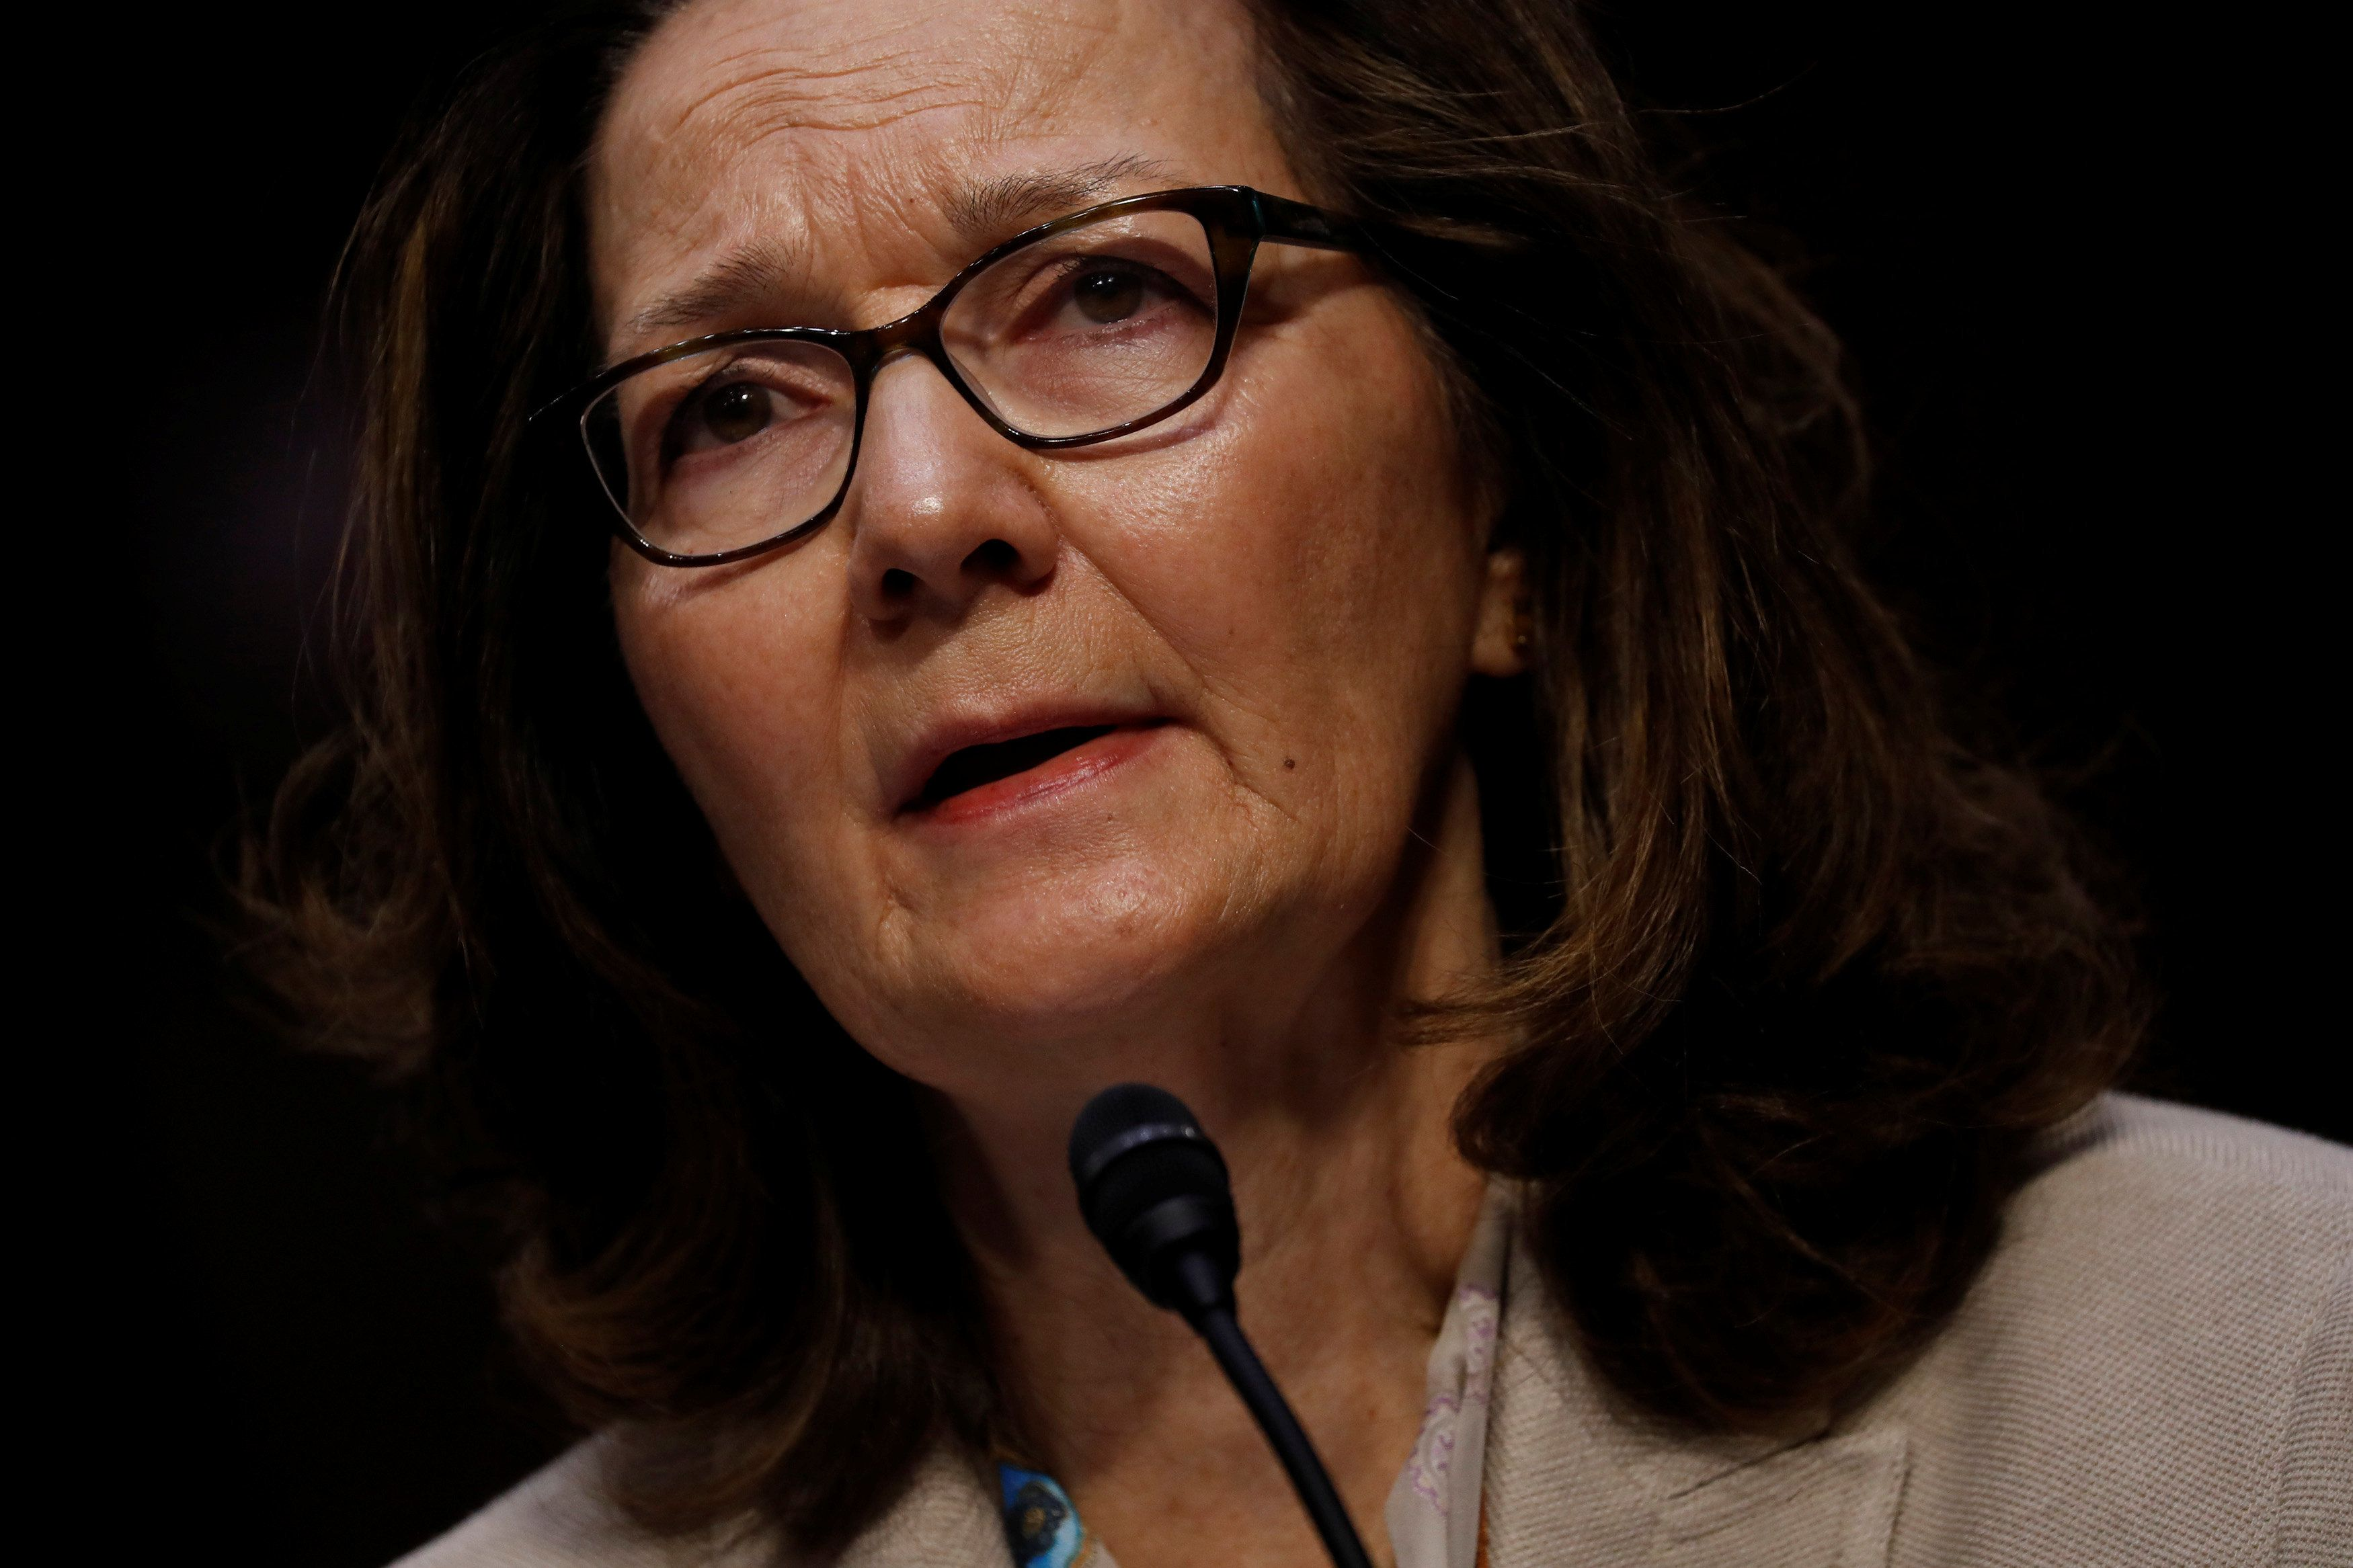 Ron Paul asks: Is Gina Haspel Qualified To Be CIA Director?